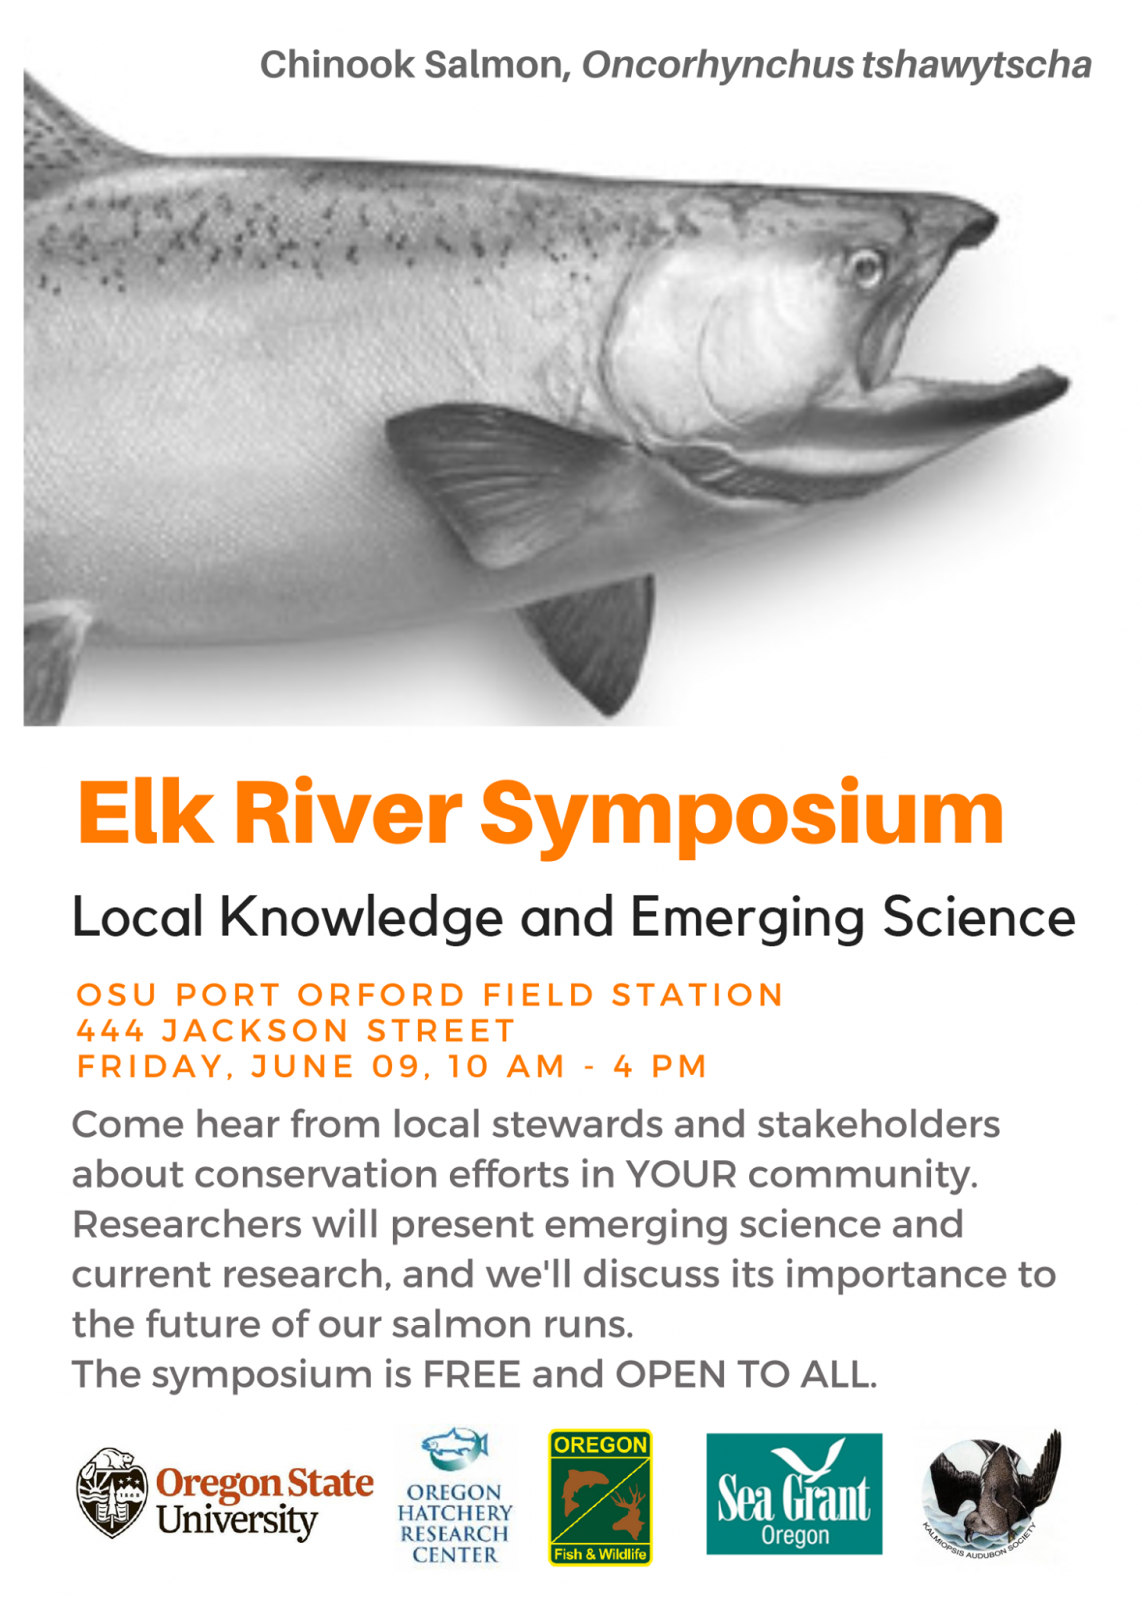 Image of Elk River Symposium event at OSU Port Orford Field Station.